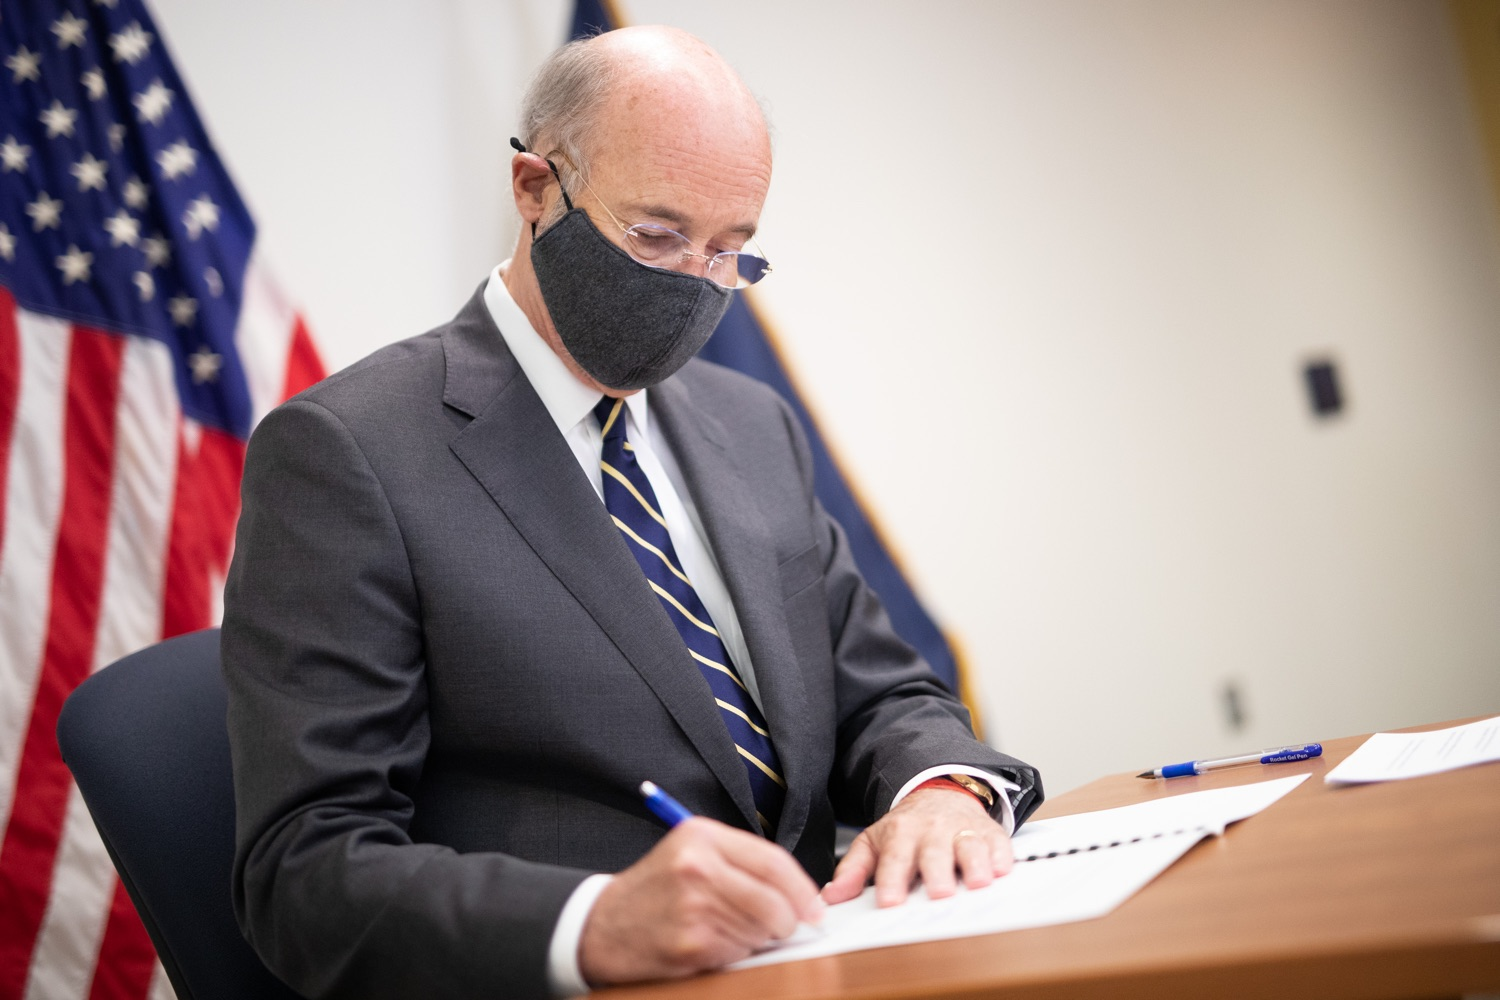 "<a href=""https://filesource.wostreaming.net/commonwealthofpa/photo/18141_gov_sb637_bill_signing_dz_20.jpg"" target=""_blank"">⇣ Download Photo<br></a>Pennsylvania Governor Tom Wolf signs a bill.  Building on his criminal justice reforms and fulfilling a recommendation to modernize job licensing, Governor Tom Wolf today signed Senate Bill 637, which removes outdated licensing barriers so skilled workers with criminal records can get a second chance and start good careers. The governor has advocated for sweeping changes to the licensing process for years. Harrisburg, PA  July 1, 2020"